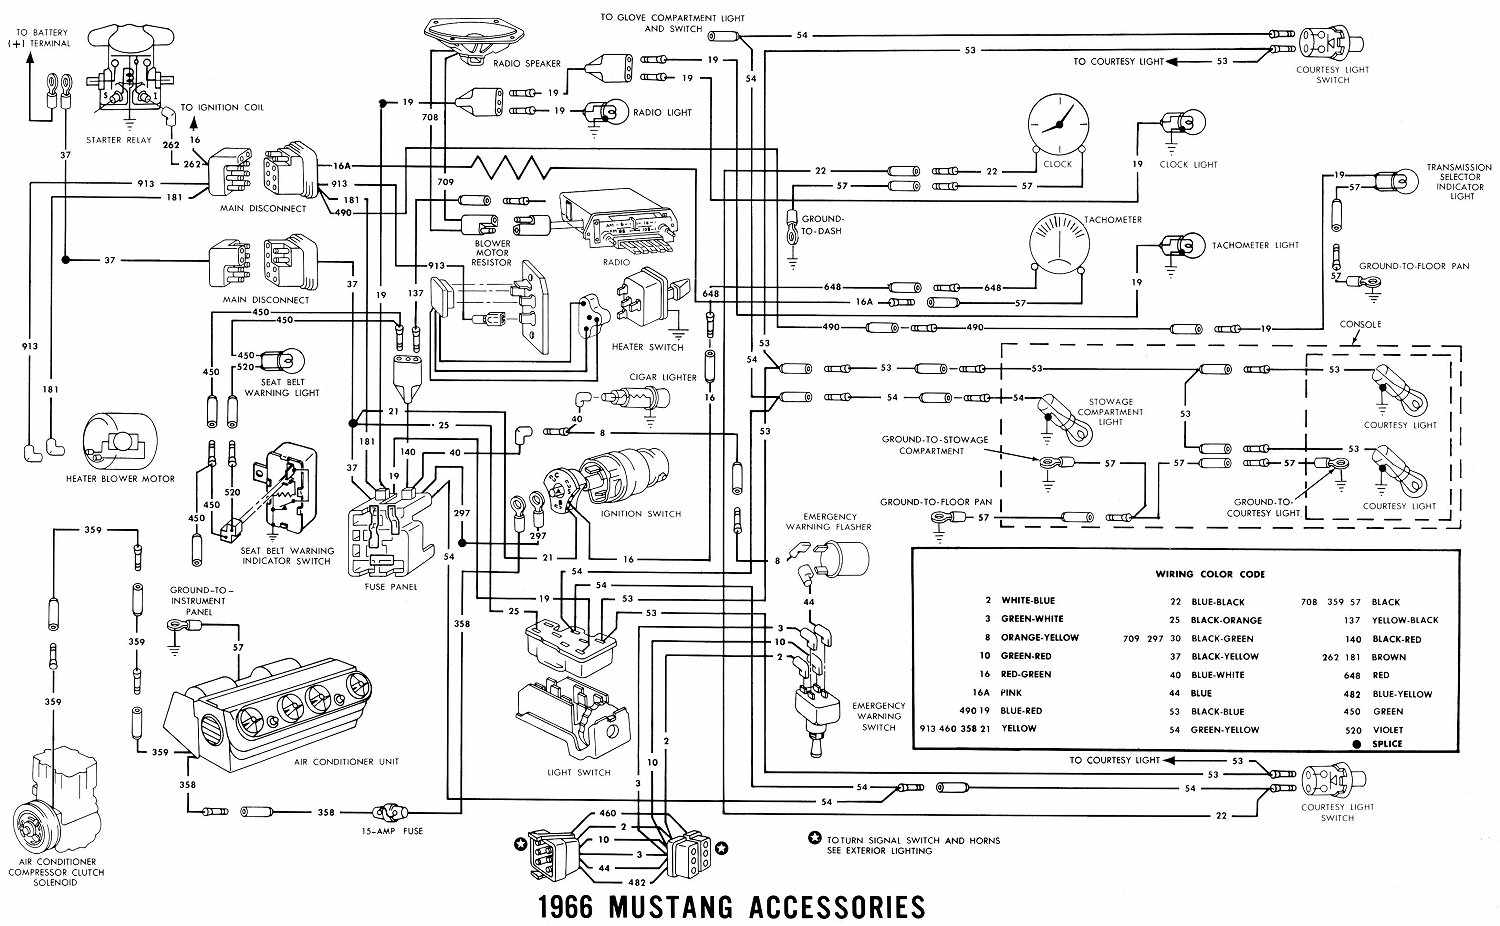 1966 Mustang Complete Accessories Wiring Diagram | Wiring